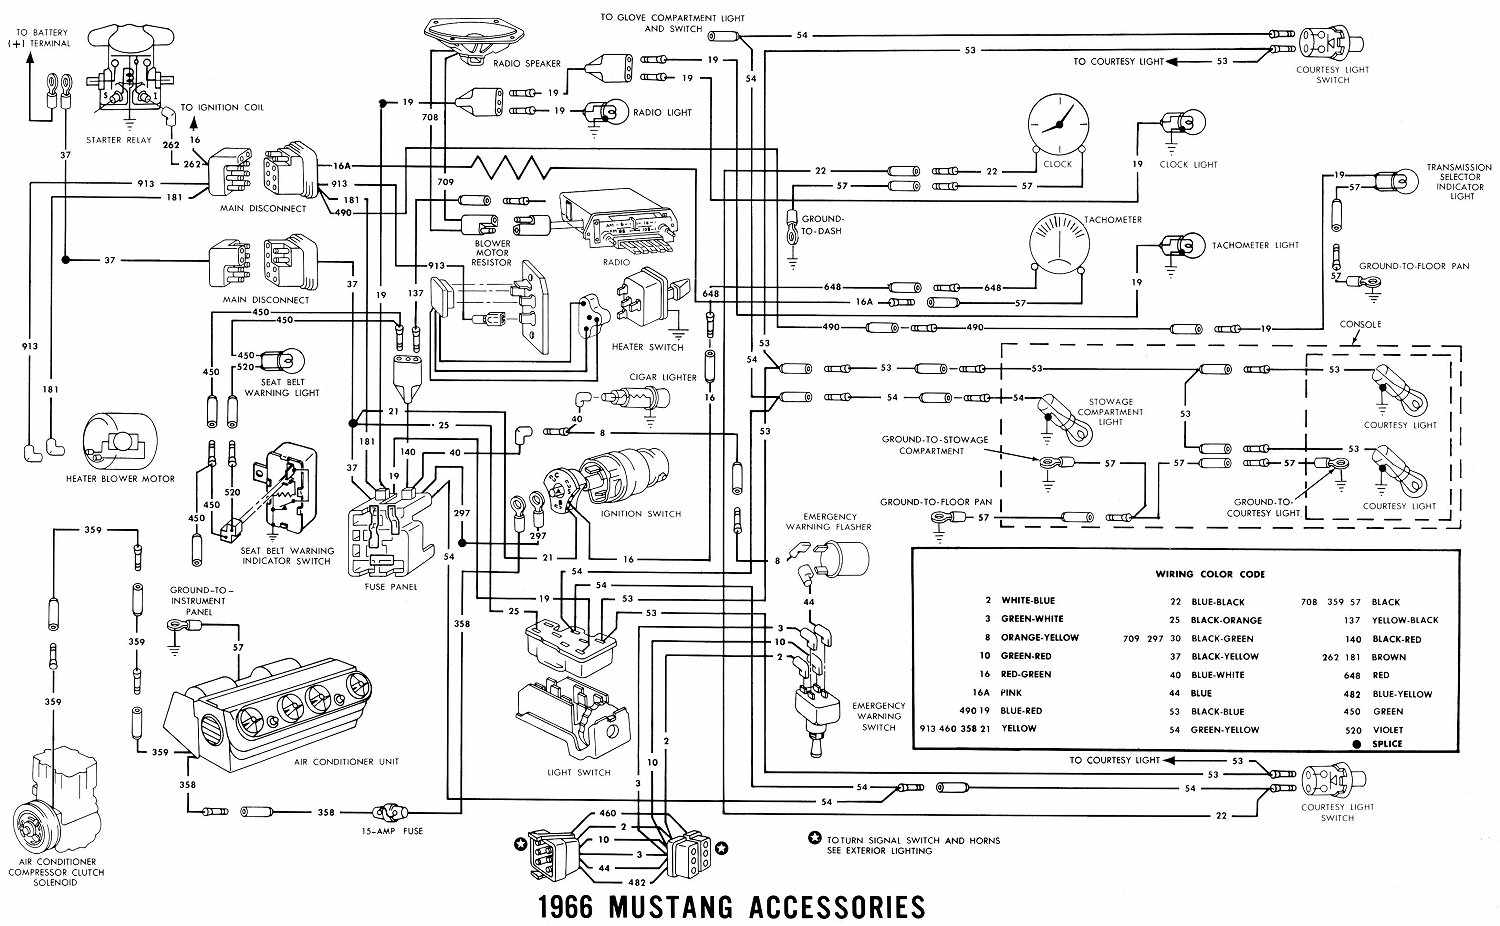 1966 Mustang Complete Accessories Wiring Diagram | Wiring